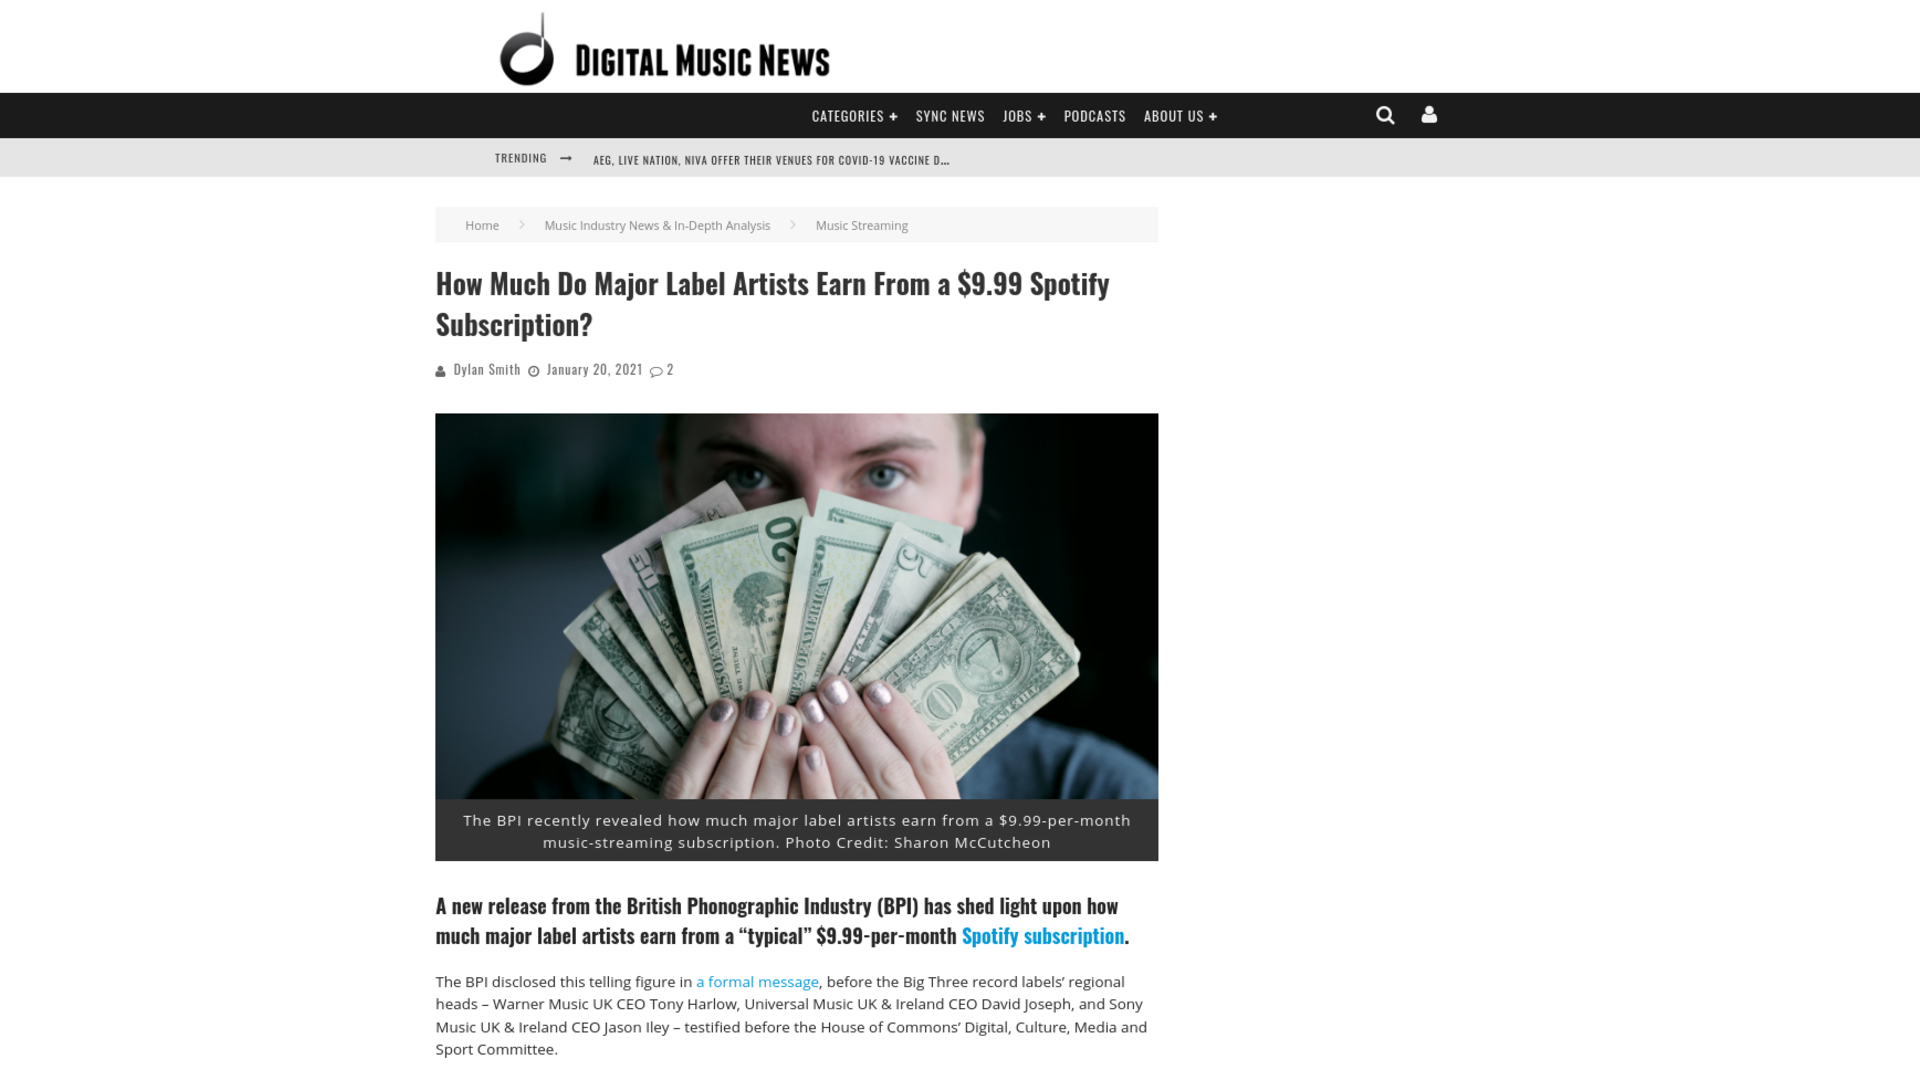 Fairness Rocks News How Much Do Major Label Artists Earn From a $9.99 Spotify Subscription?